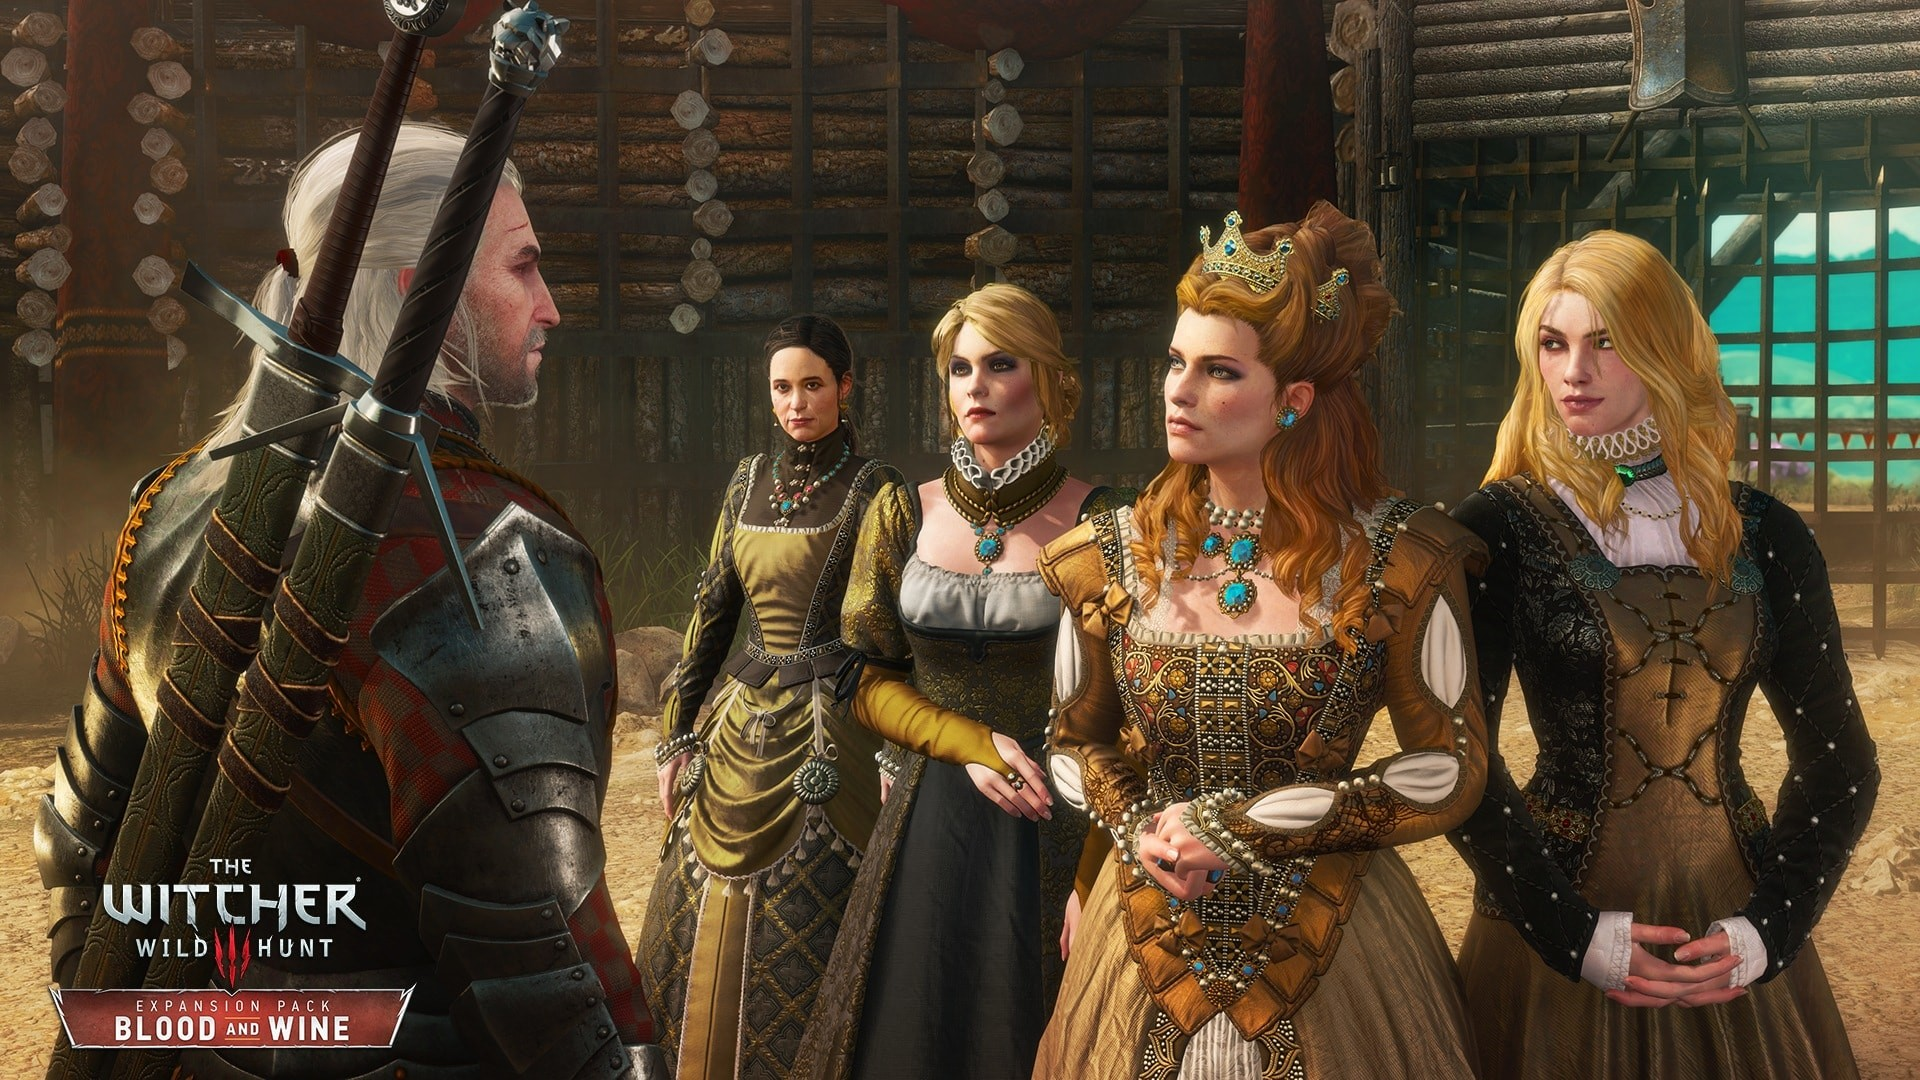 The Witcher 3 Wild Hunt – Blood and Wine Pictures